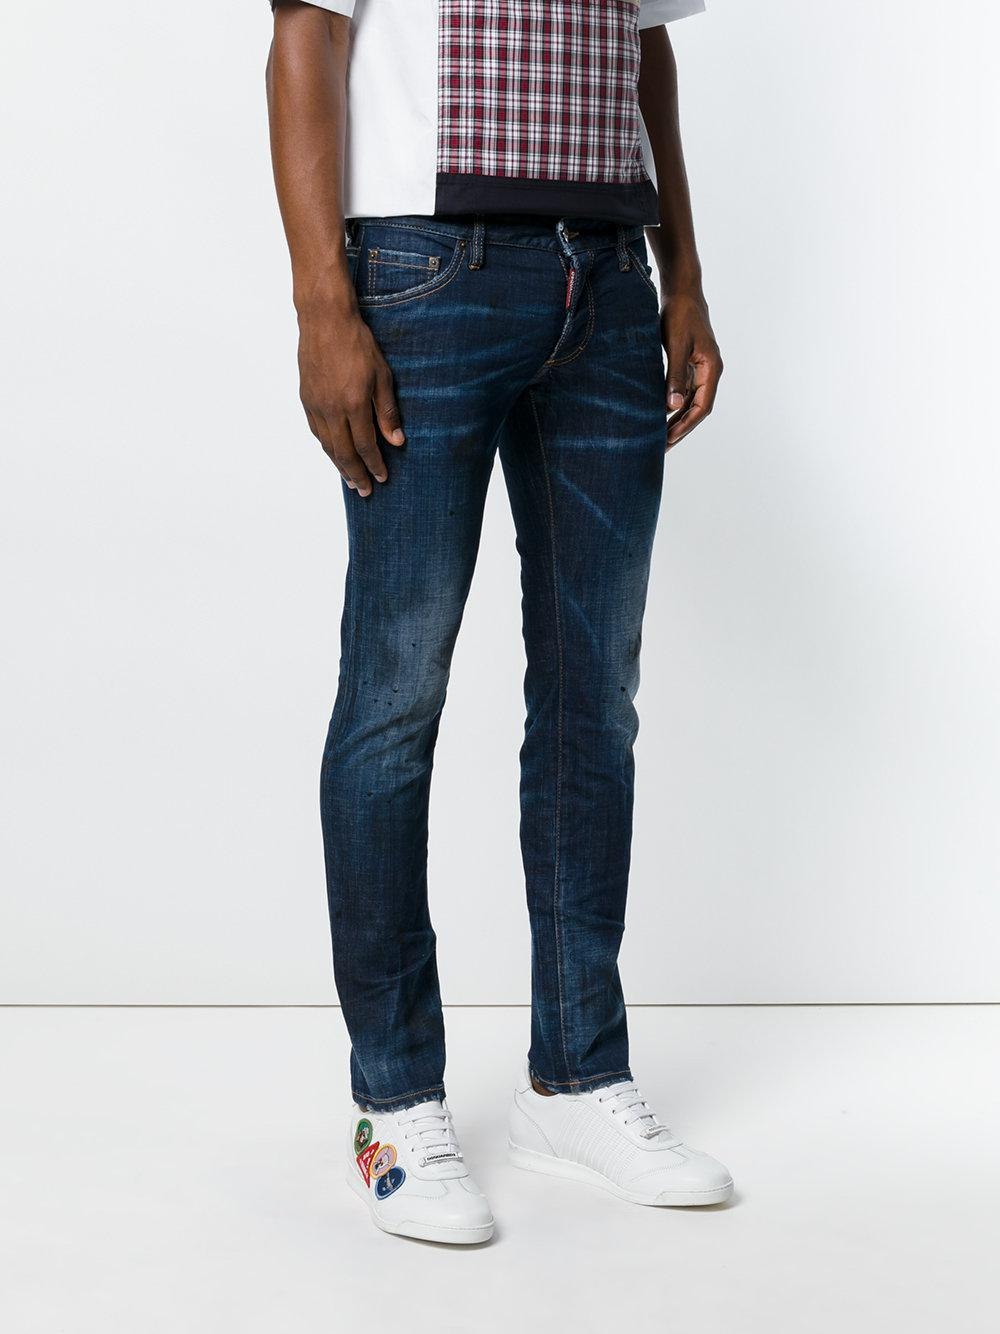 Dsquared 178 Clement Limited Edition Jeans In Blue For Men Lyst